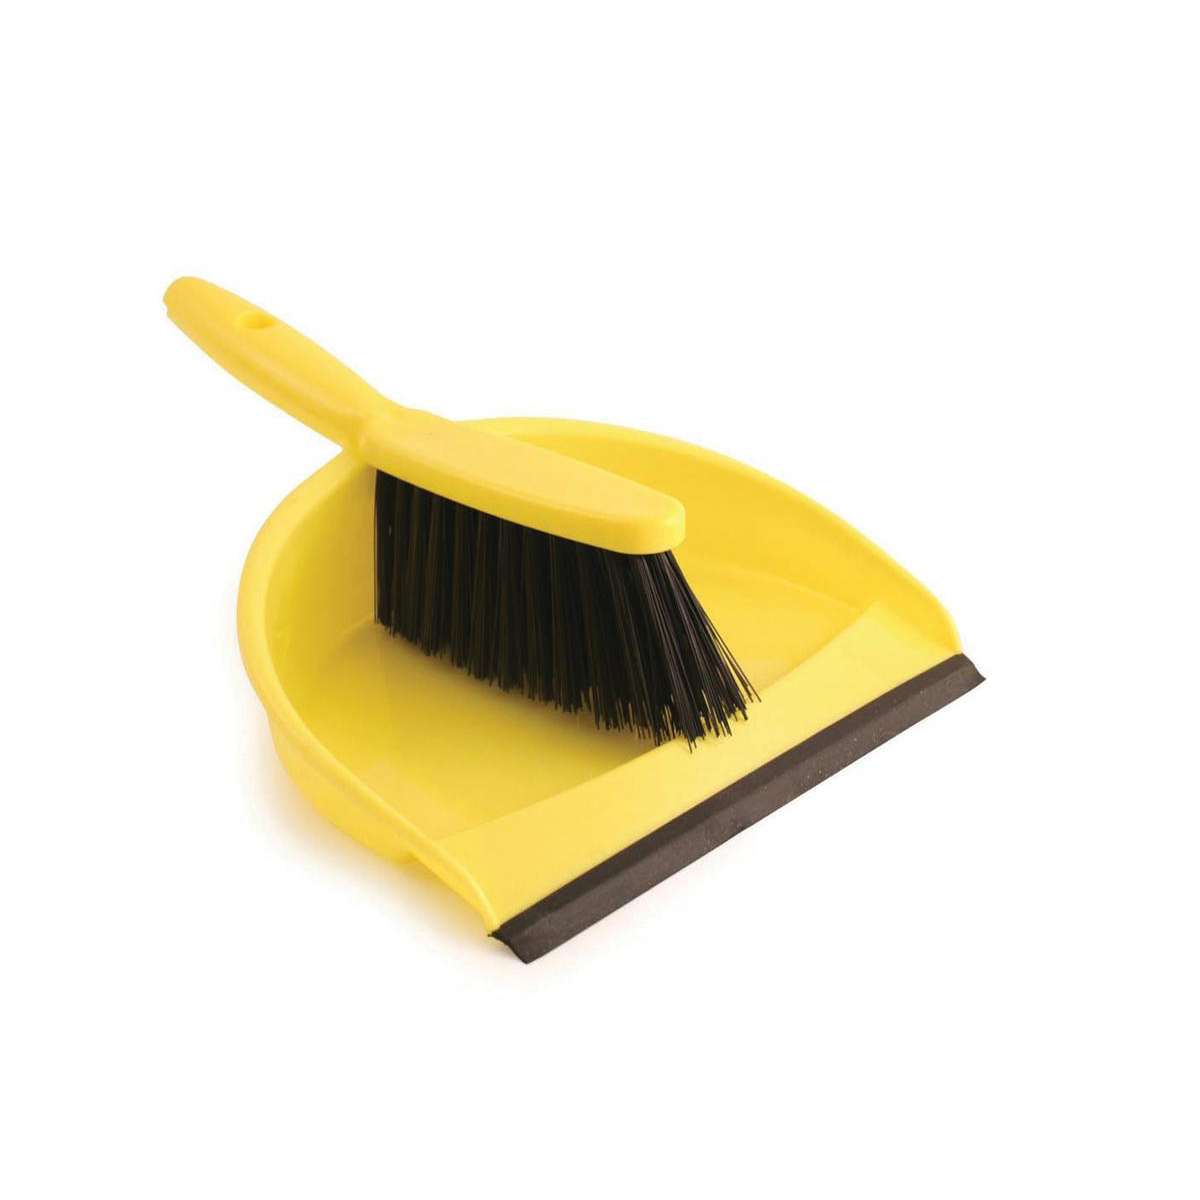 Dust brushes or pans Dustpan and Brush Set Soft Bristles Yellow SET